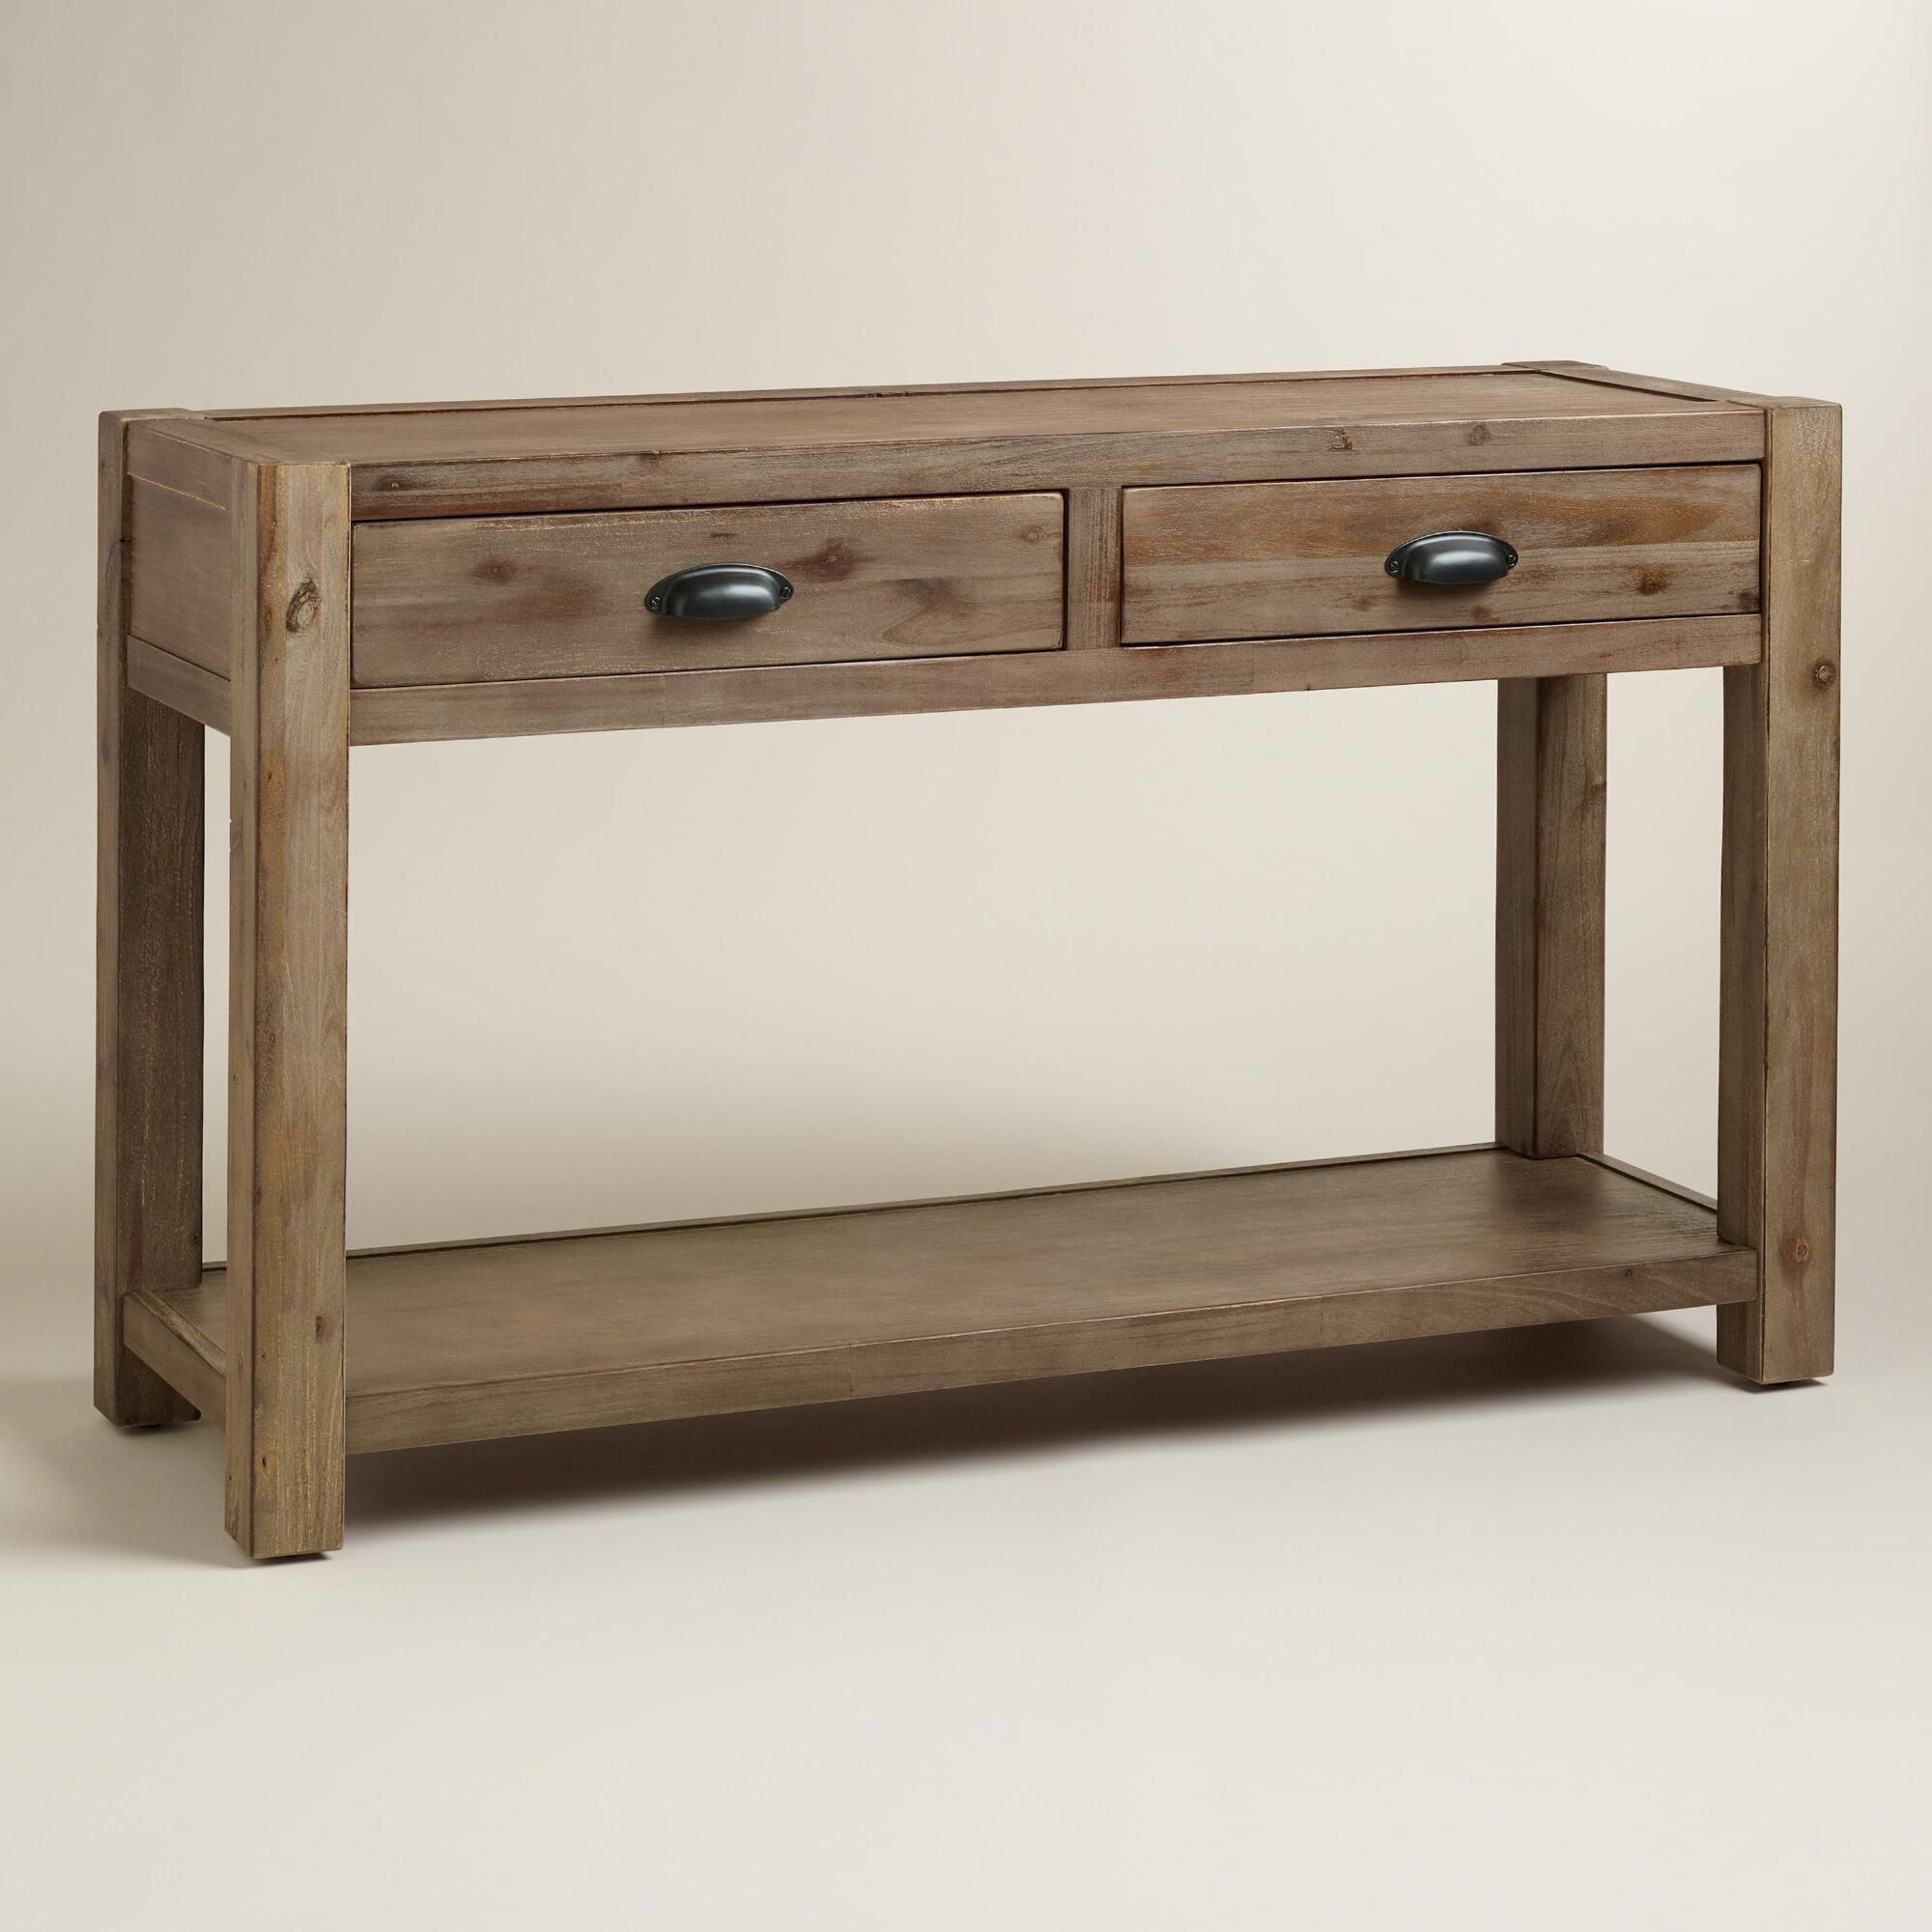 Wood quade console table rustic console tables entryway console our rustic console table features a chunky wood frame and metal library style pulls geotapseo Choice Image